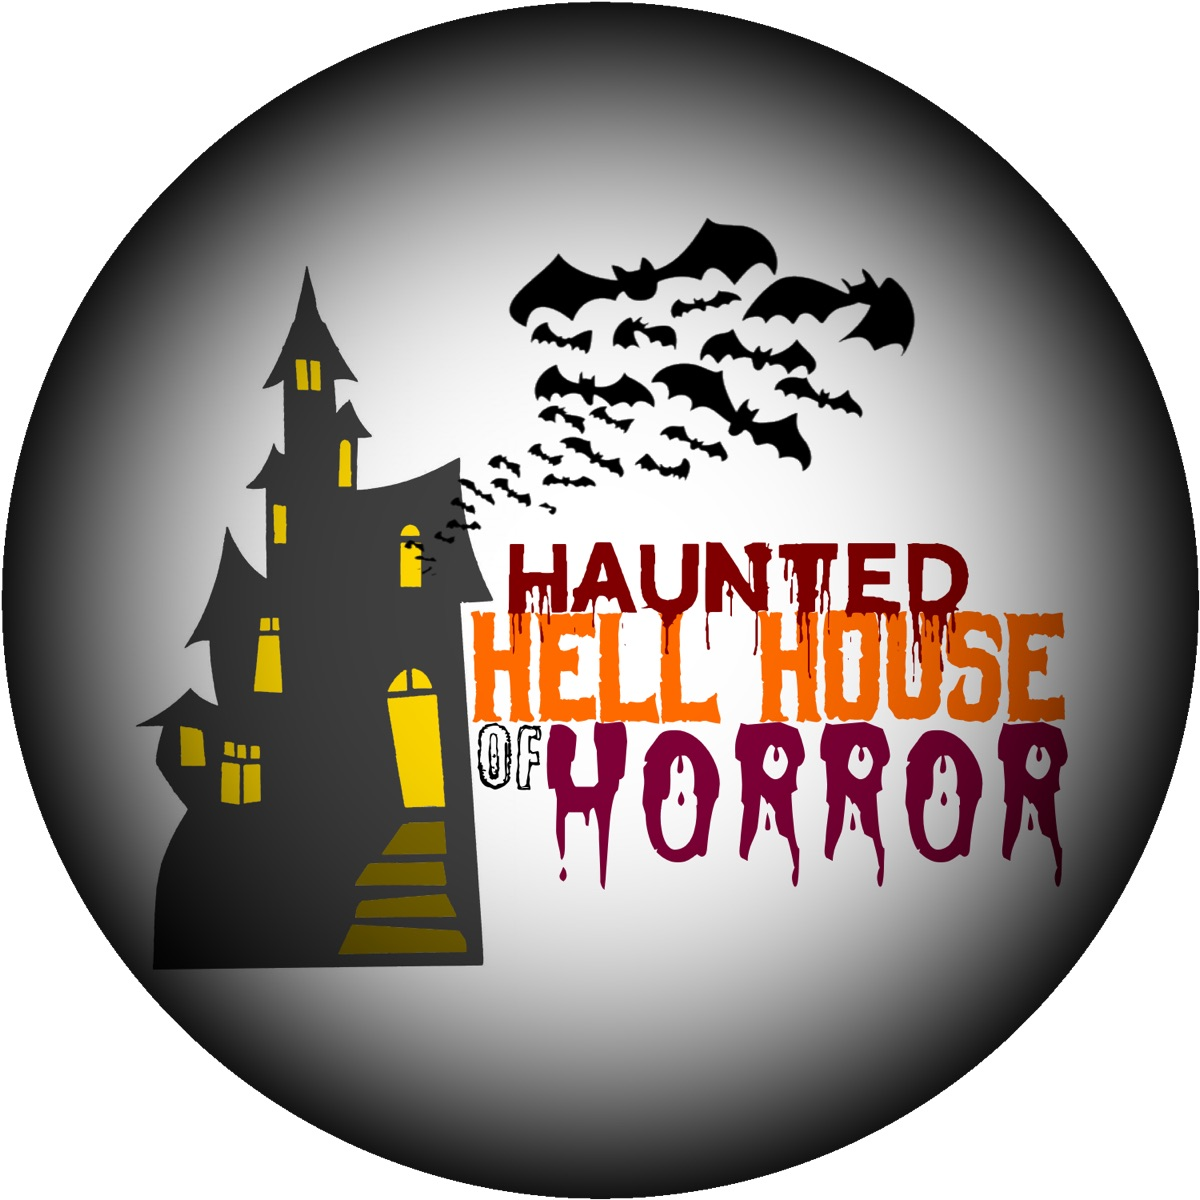 Haunted Hell House of Horror